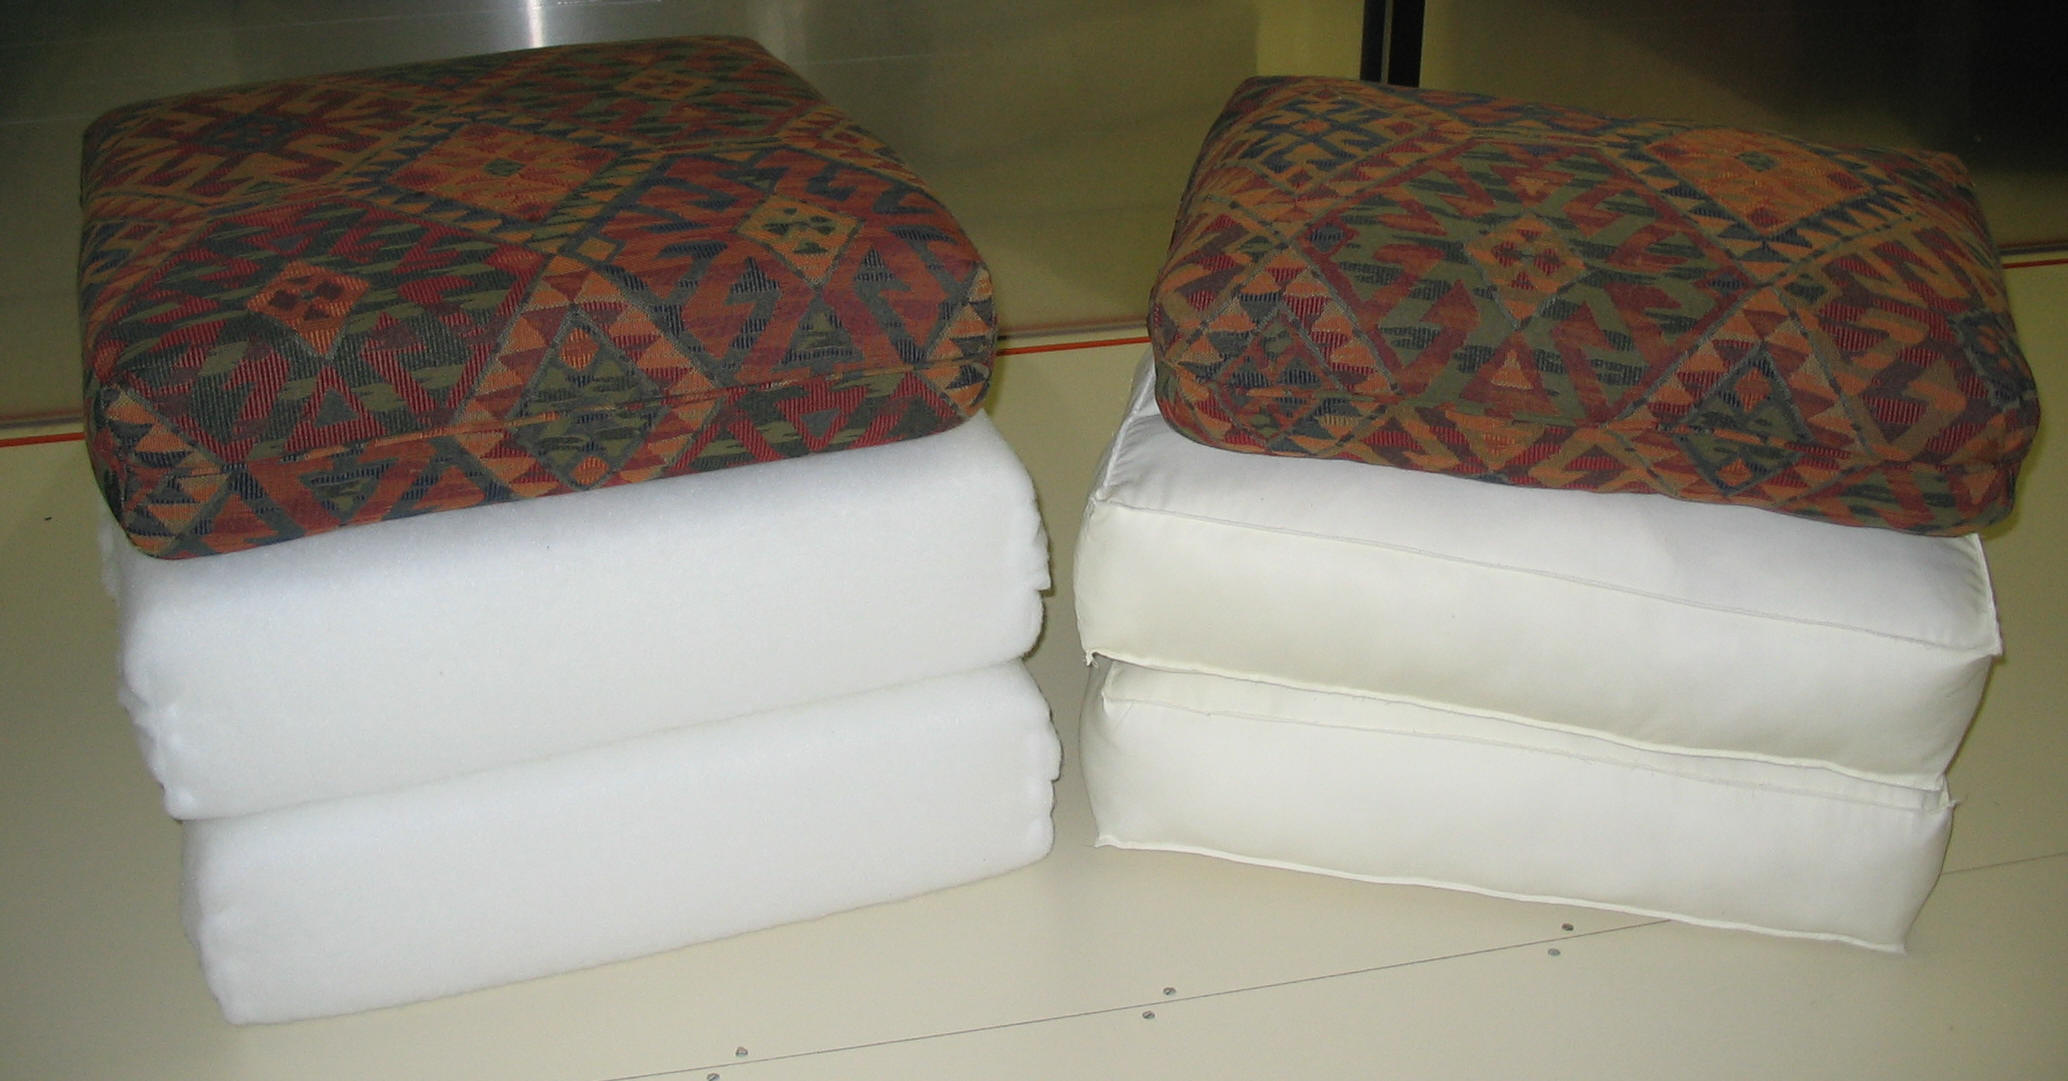 High Density Upholstery Foam | Foam Padding Upholstery | Discount Upholstery Foam